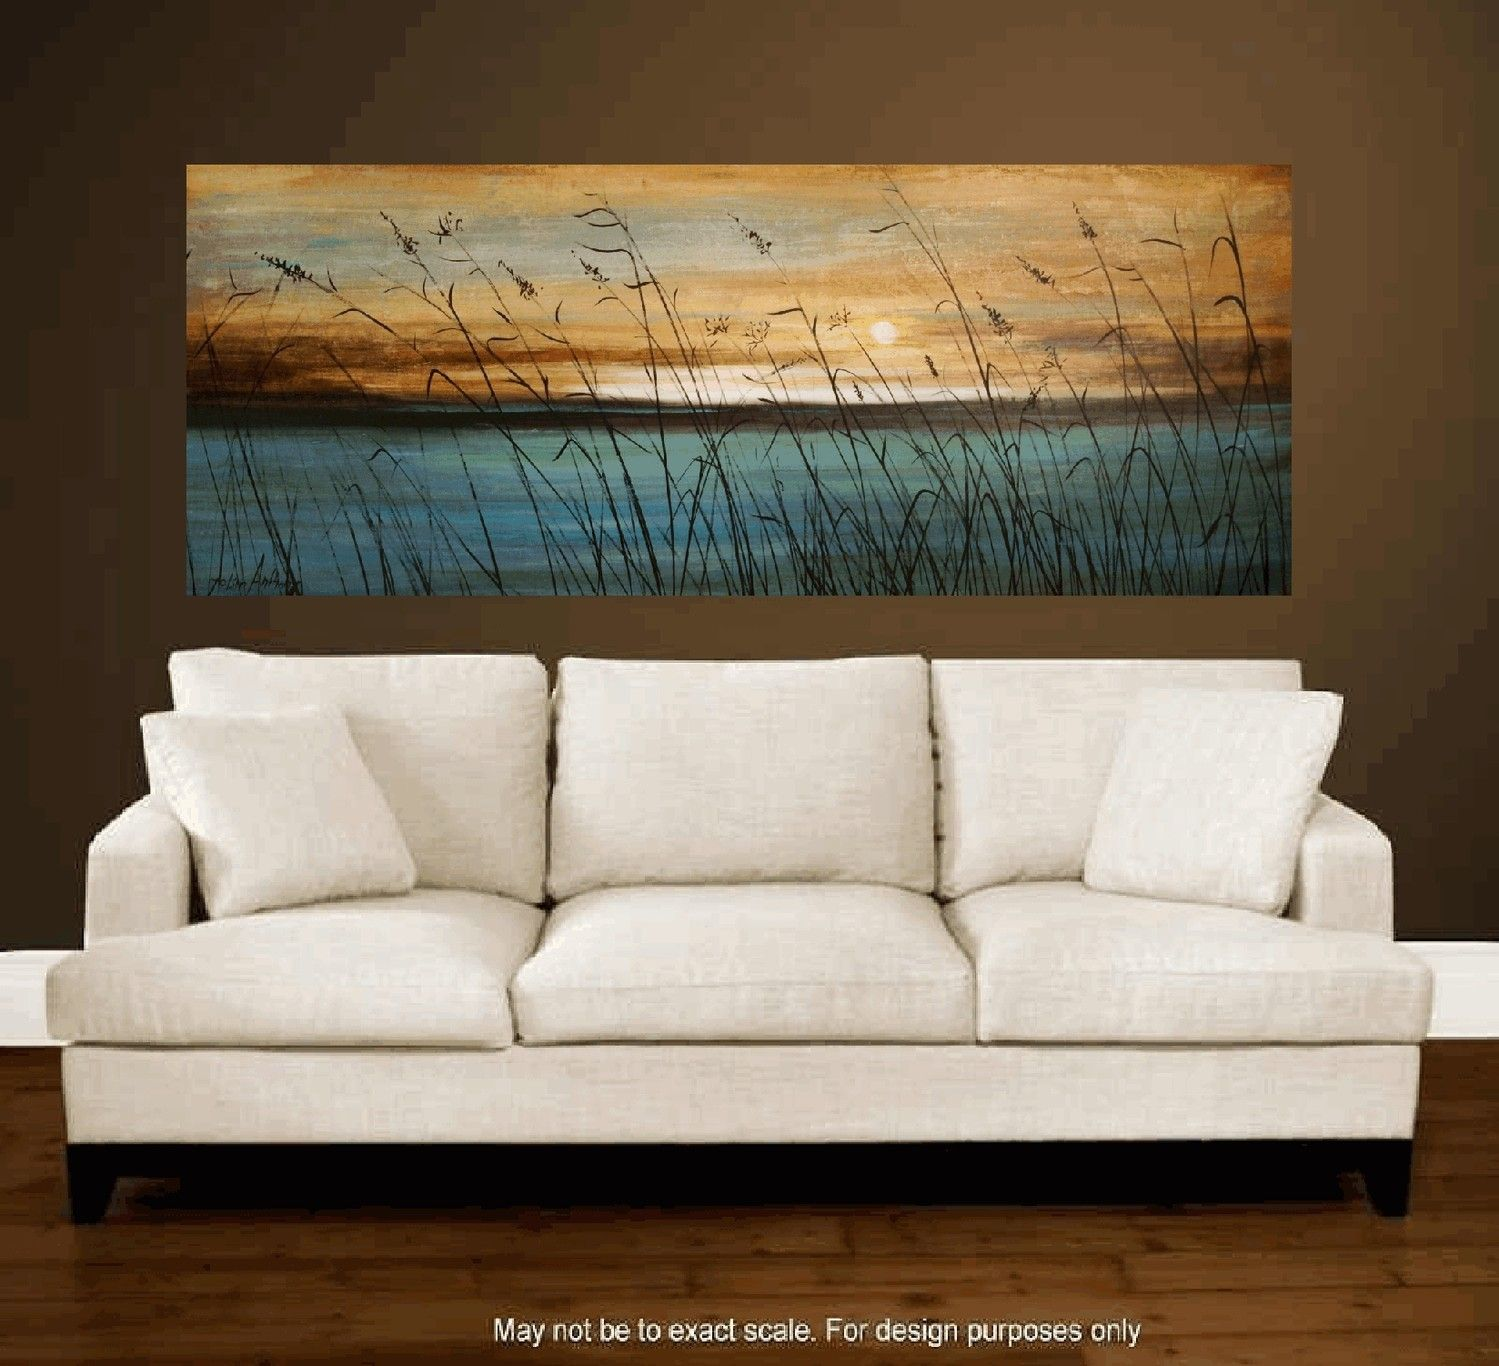 Big Sofa Jolina Abstract Art 72 Quot Original Abstract Landscape Painting With